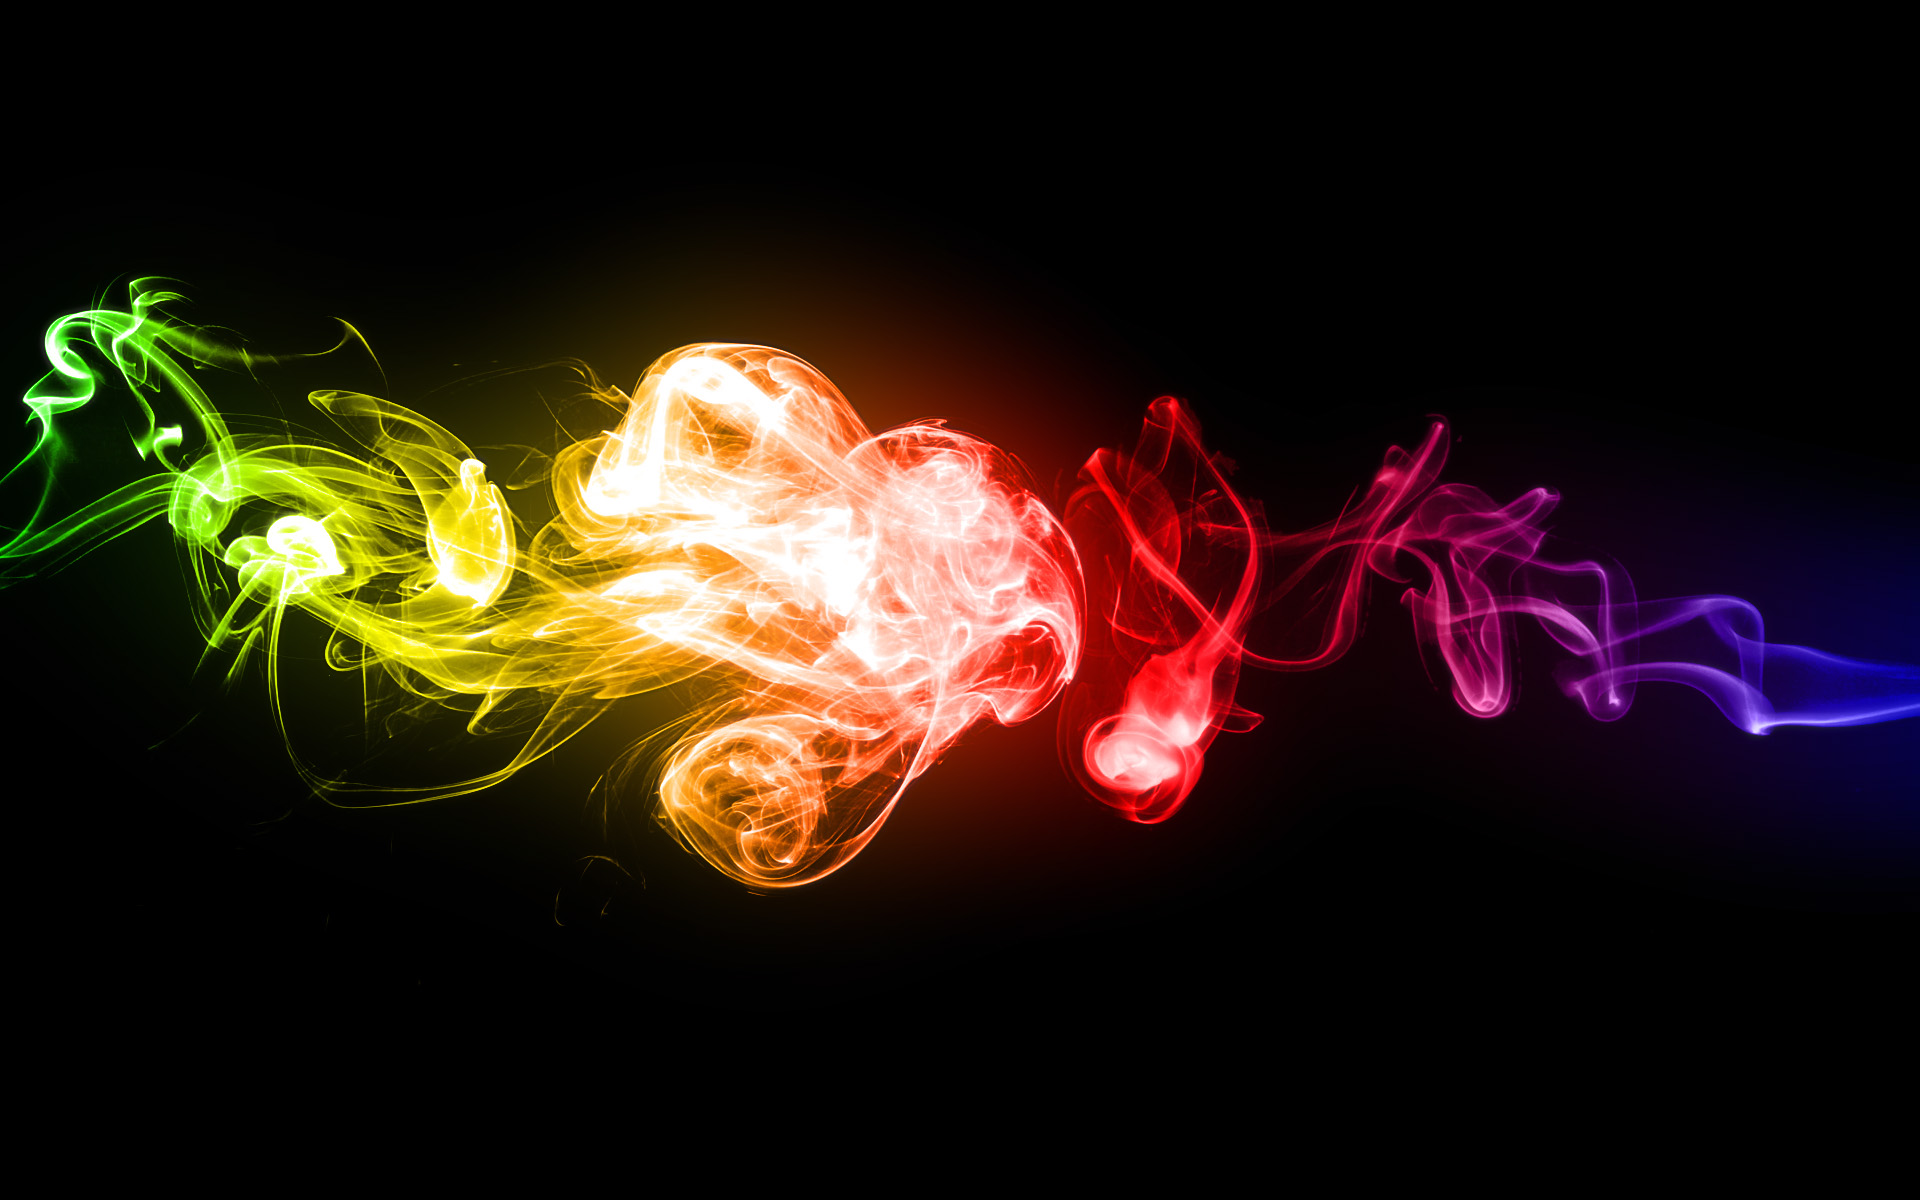 Smoke Wallpaper Hd Rainbow